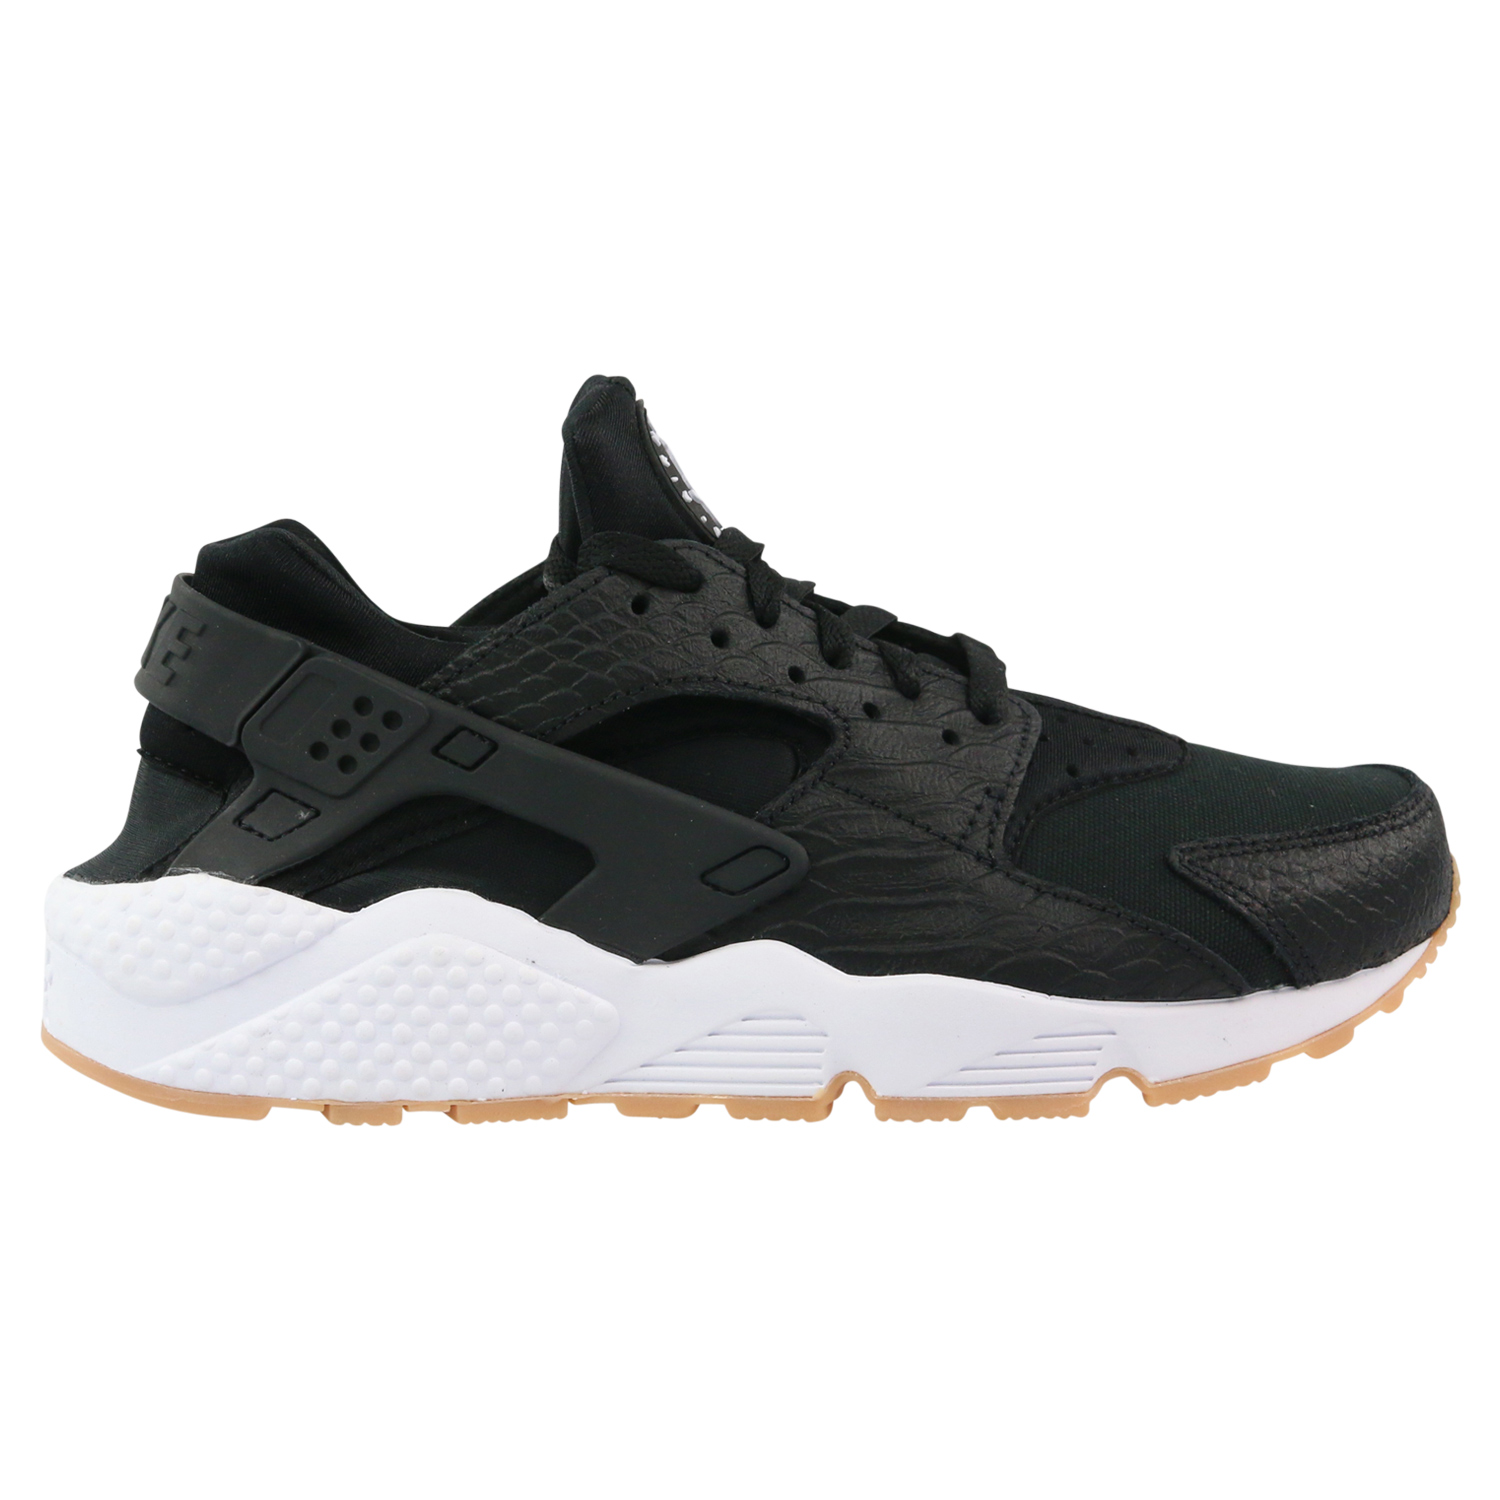 nike air huarache ultra premium se schuhe turnschuhe. Black Bedroom Furniture Sets. Home Design Ideas